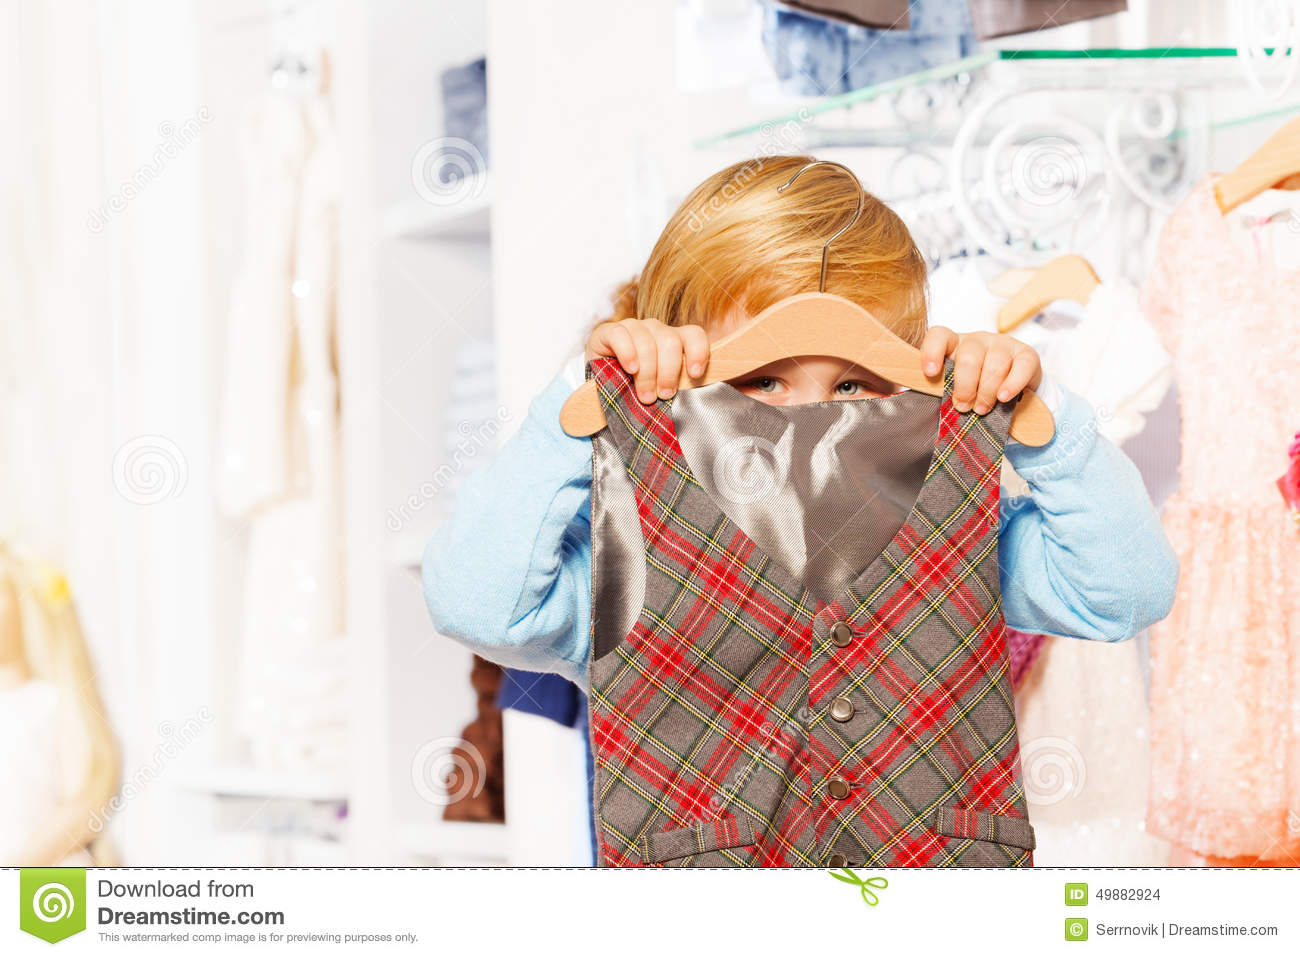 up-view-boy-hiding-behind-hanger-vest-cute-clothes-store-49882924.jpg